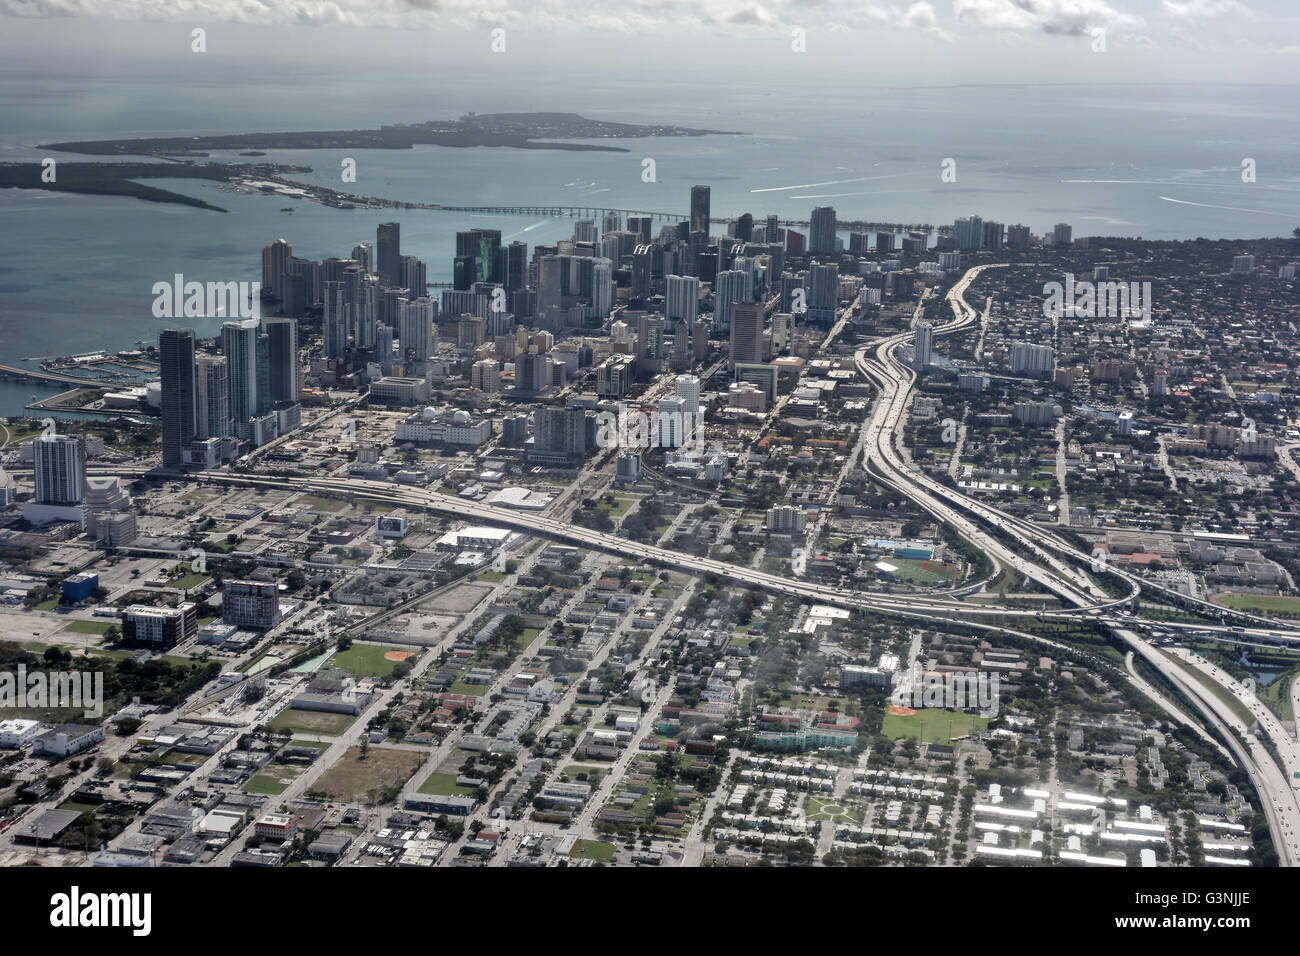 Aerial view, traffic junction, Downtown Miami, Florida, USA - Stock Image